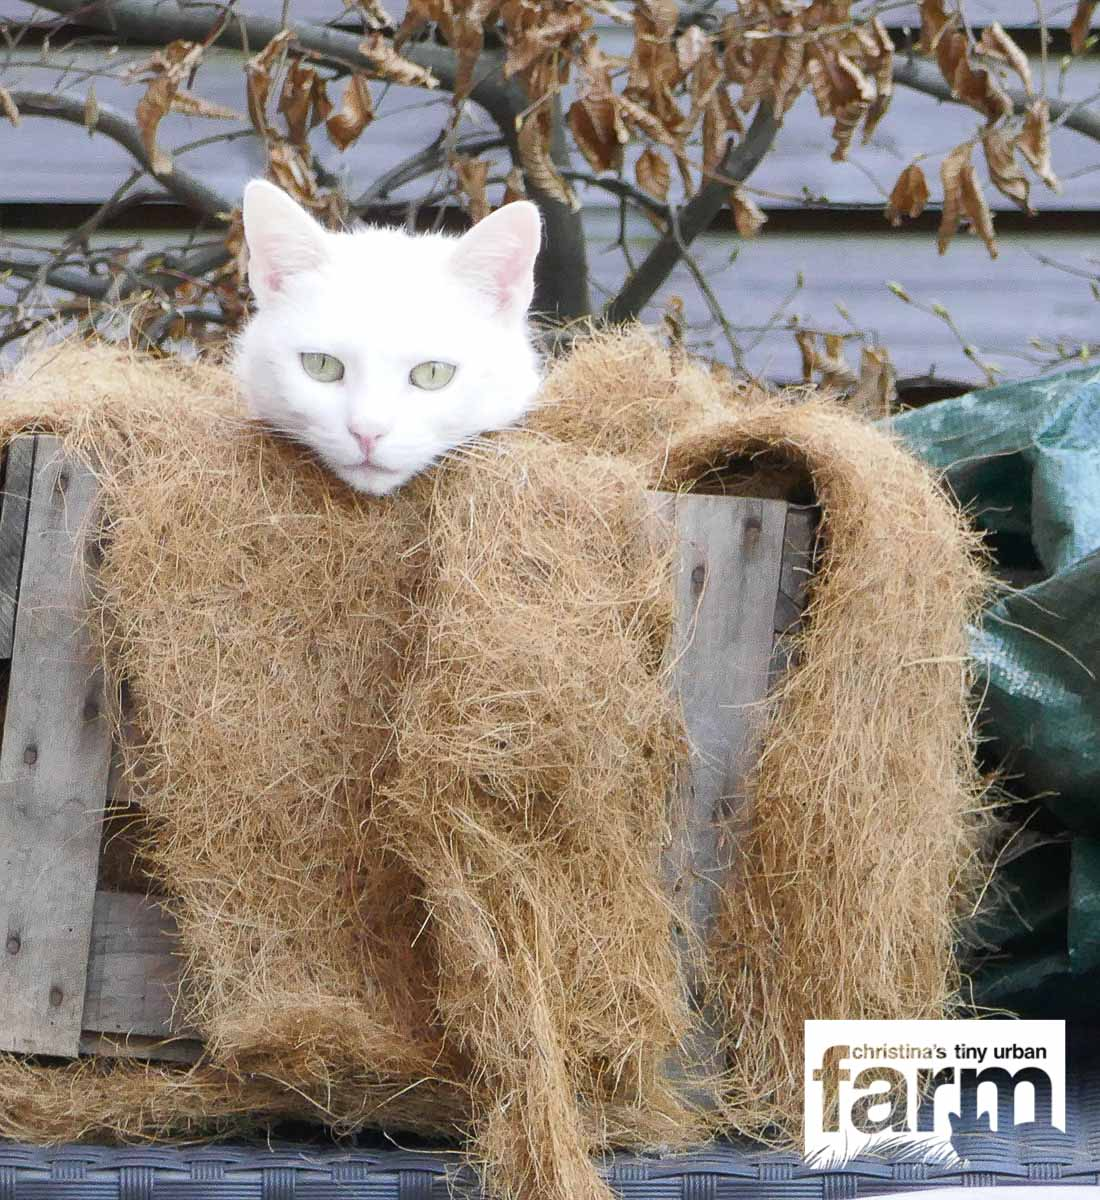 White cat sitting a wooden wine box, filled with a coconut mat.